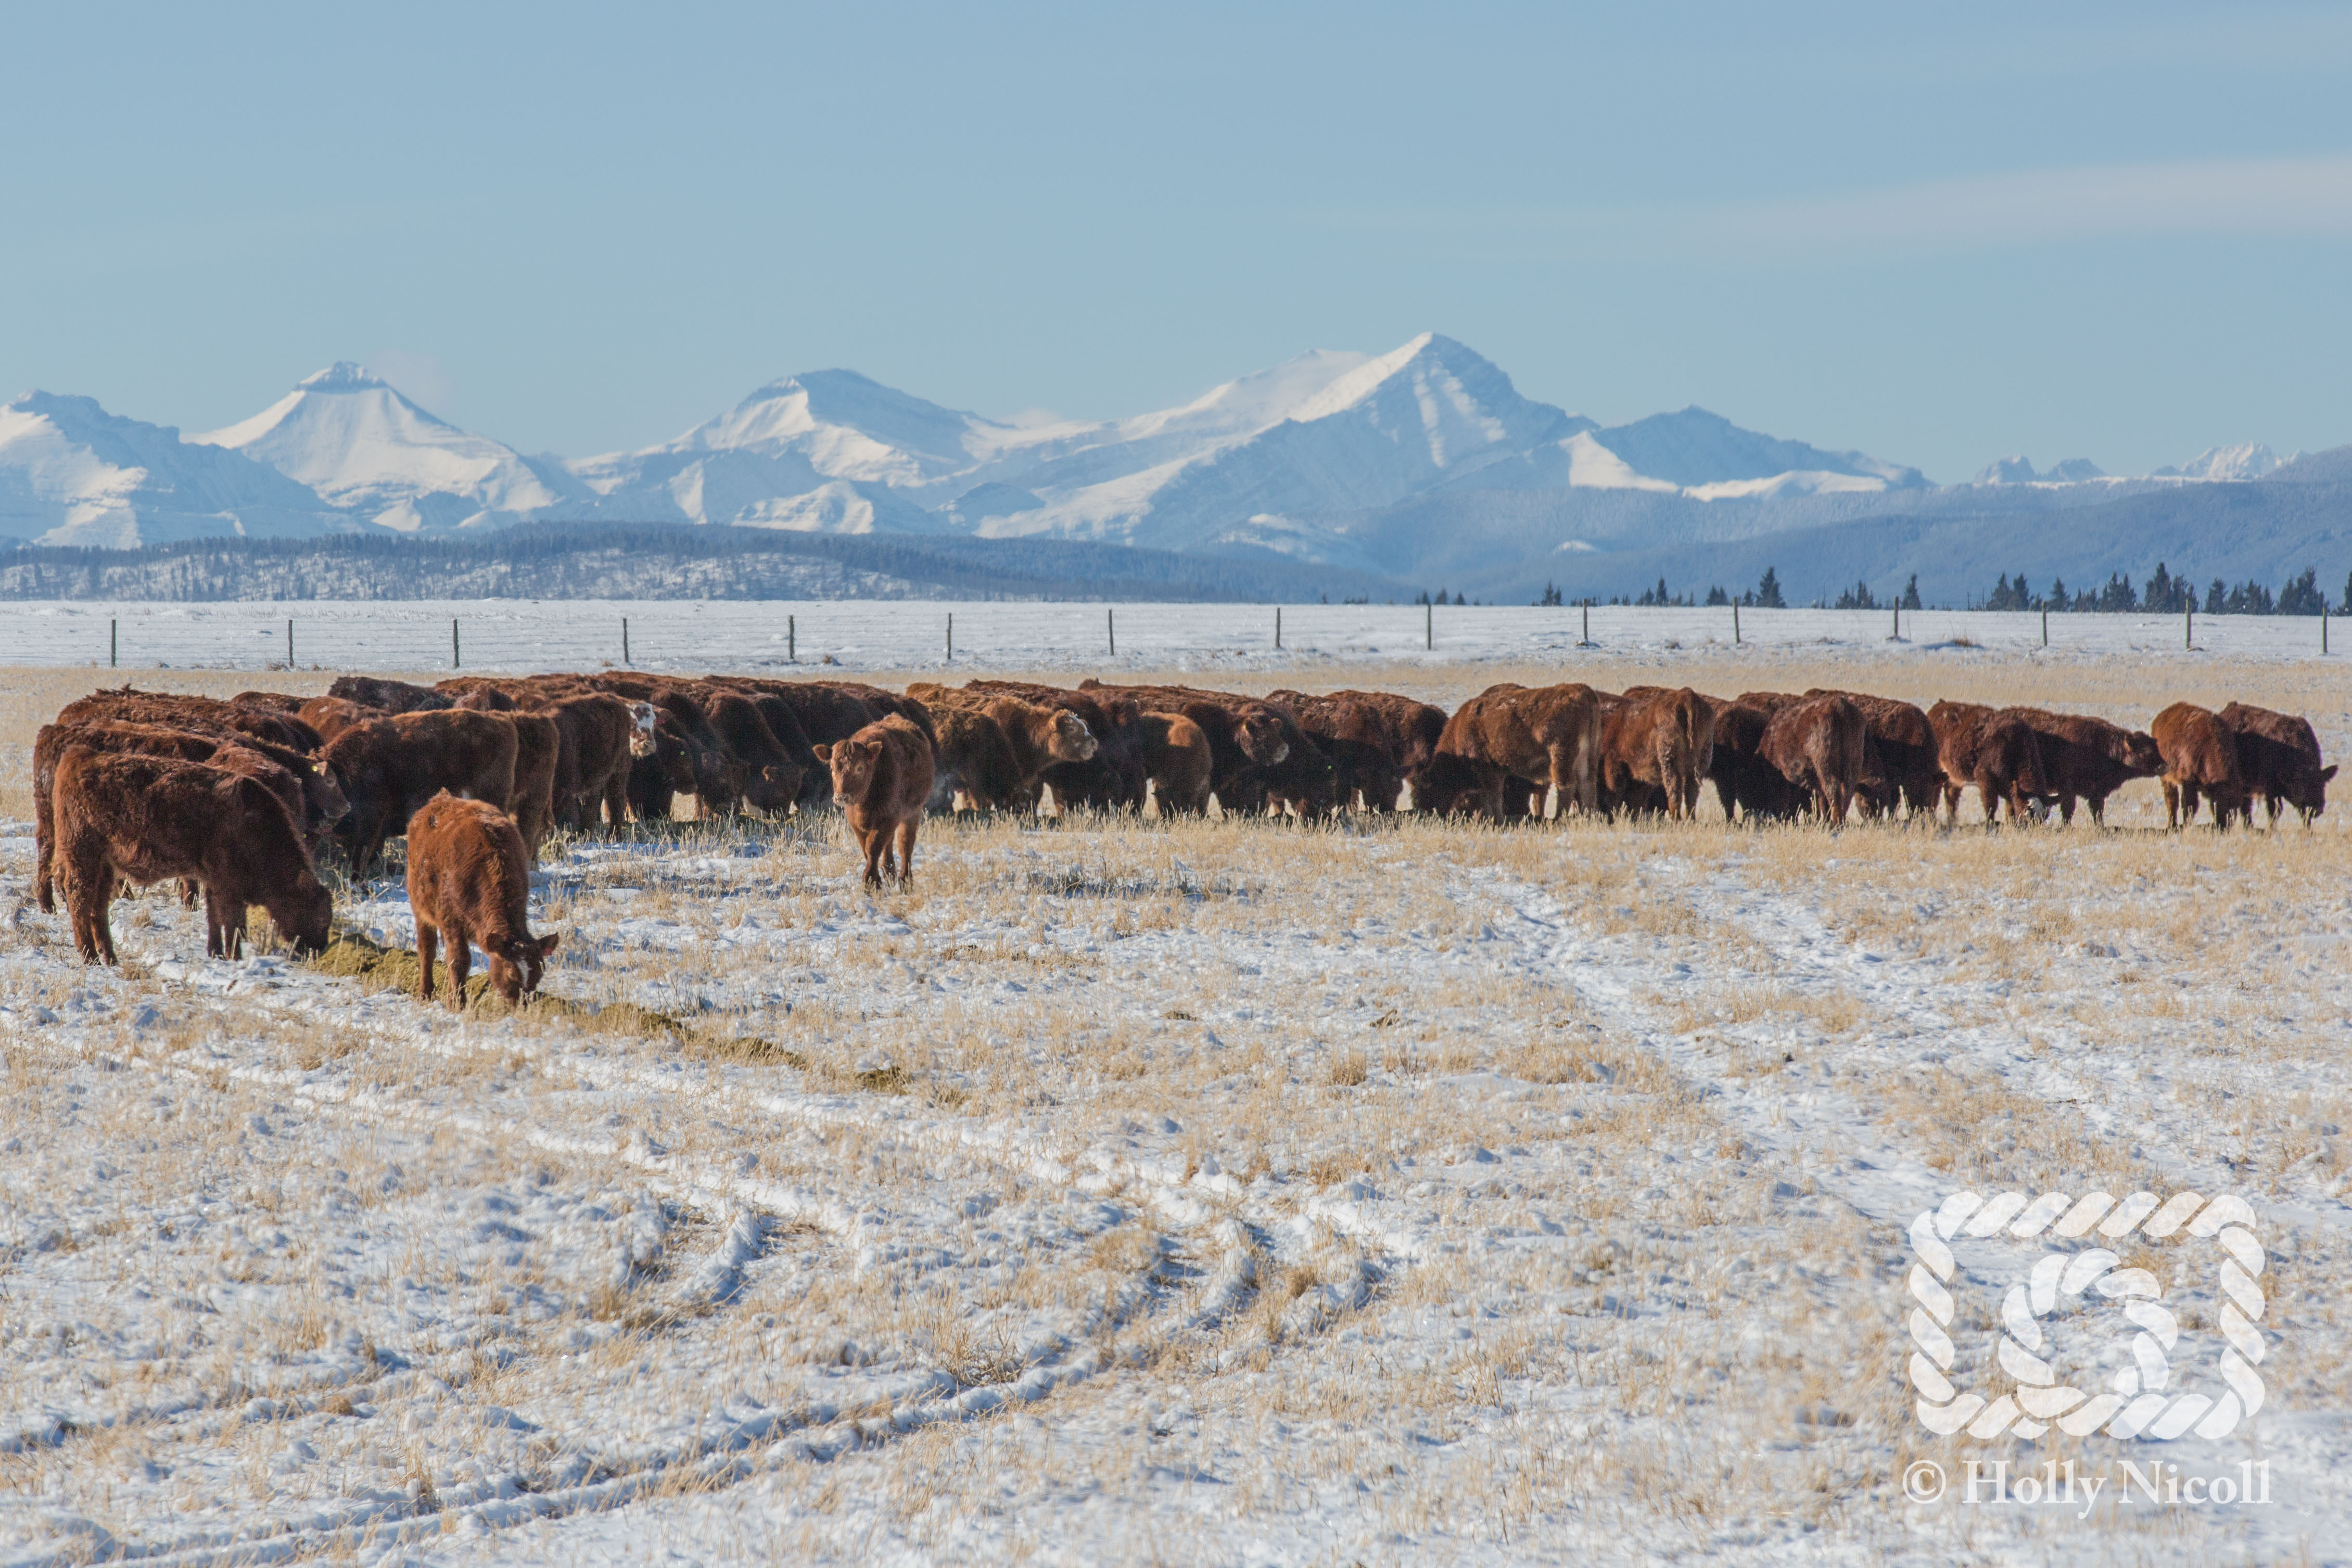 A herd of cattle eat silage on a snowy pasture with mountains in the background.